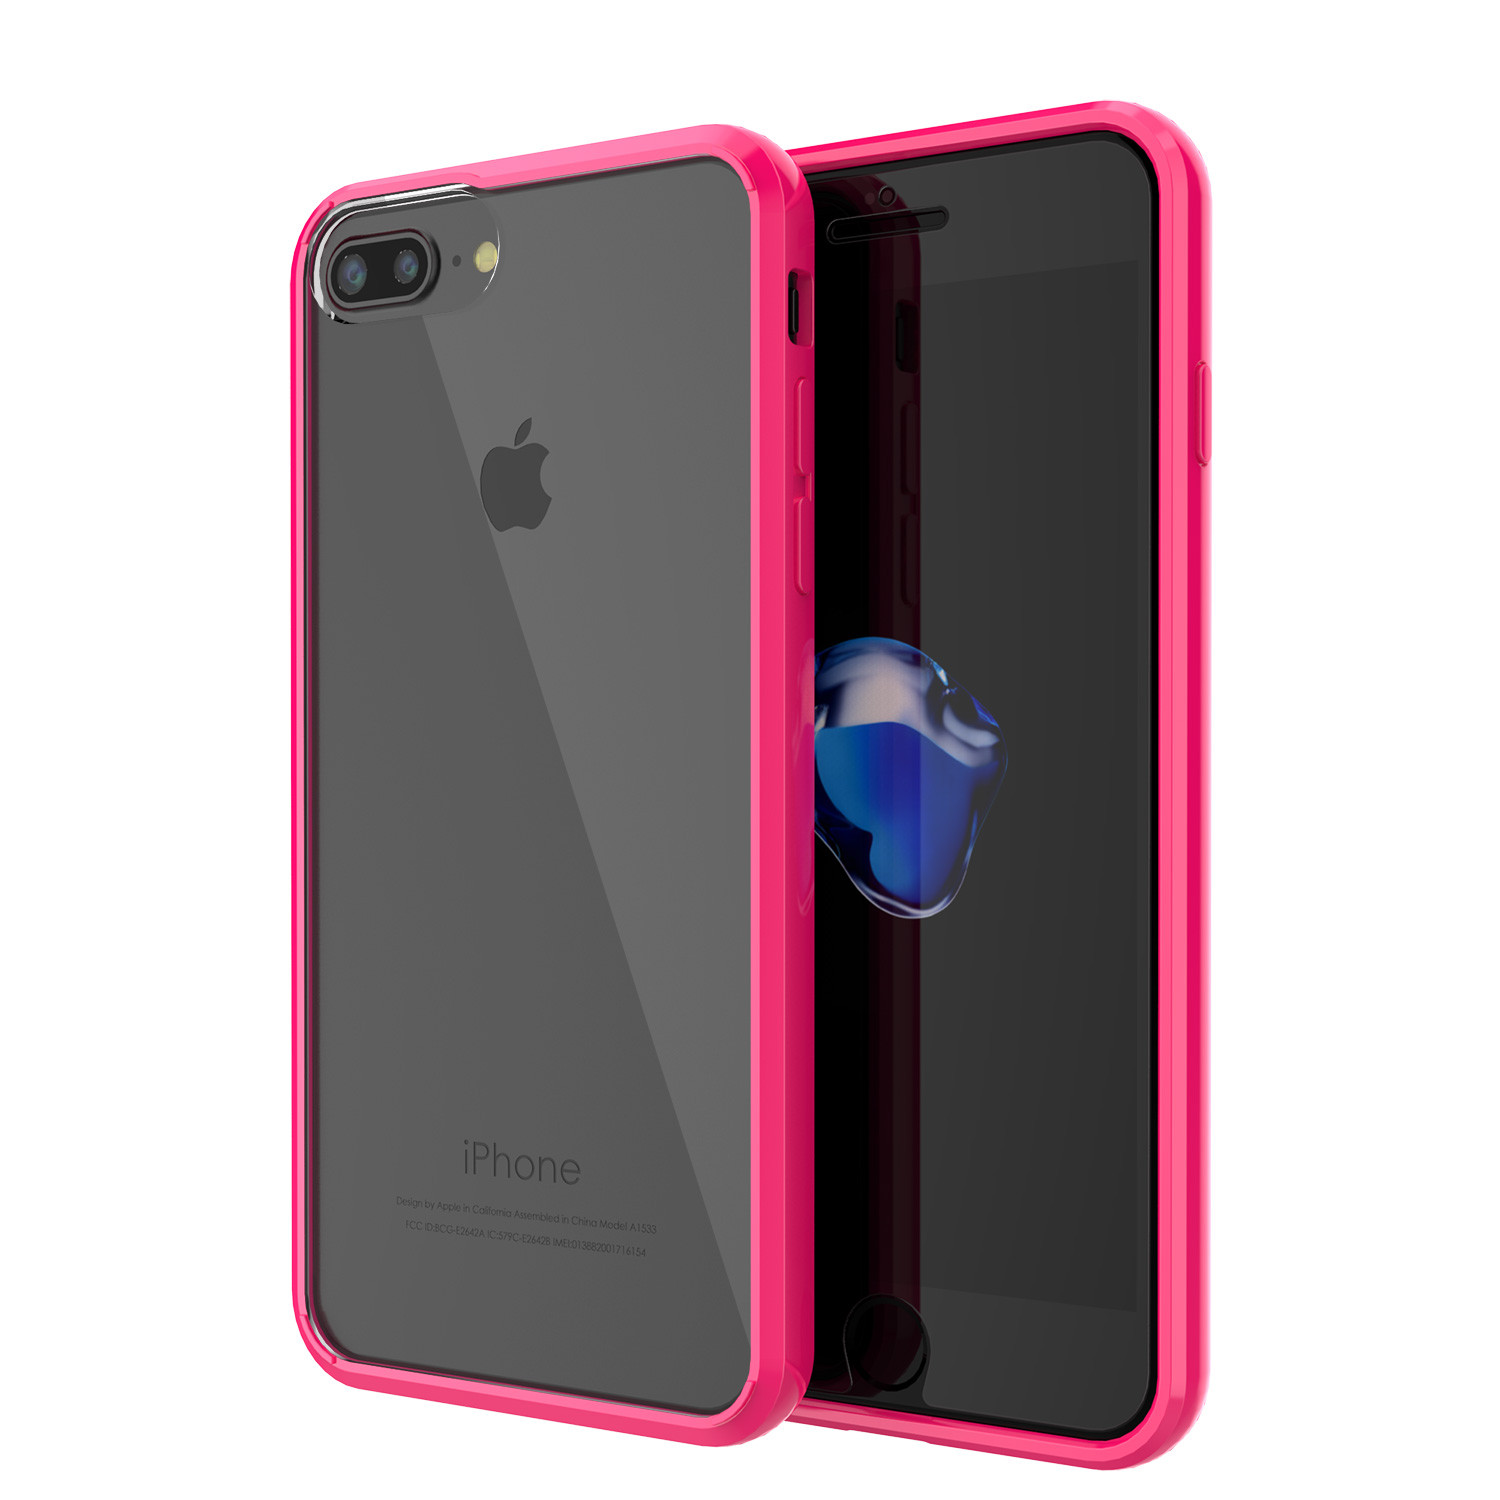 Punkcase Lucid 2.0- $19.89 for iPhone 7